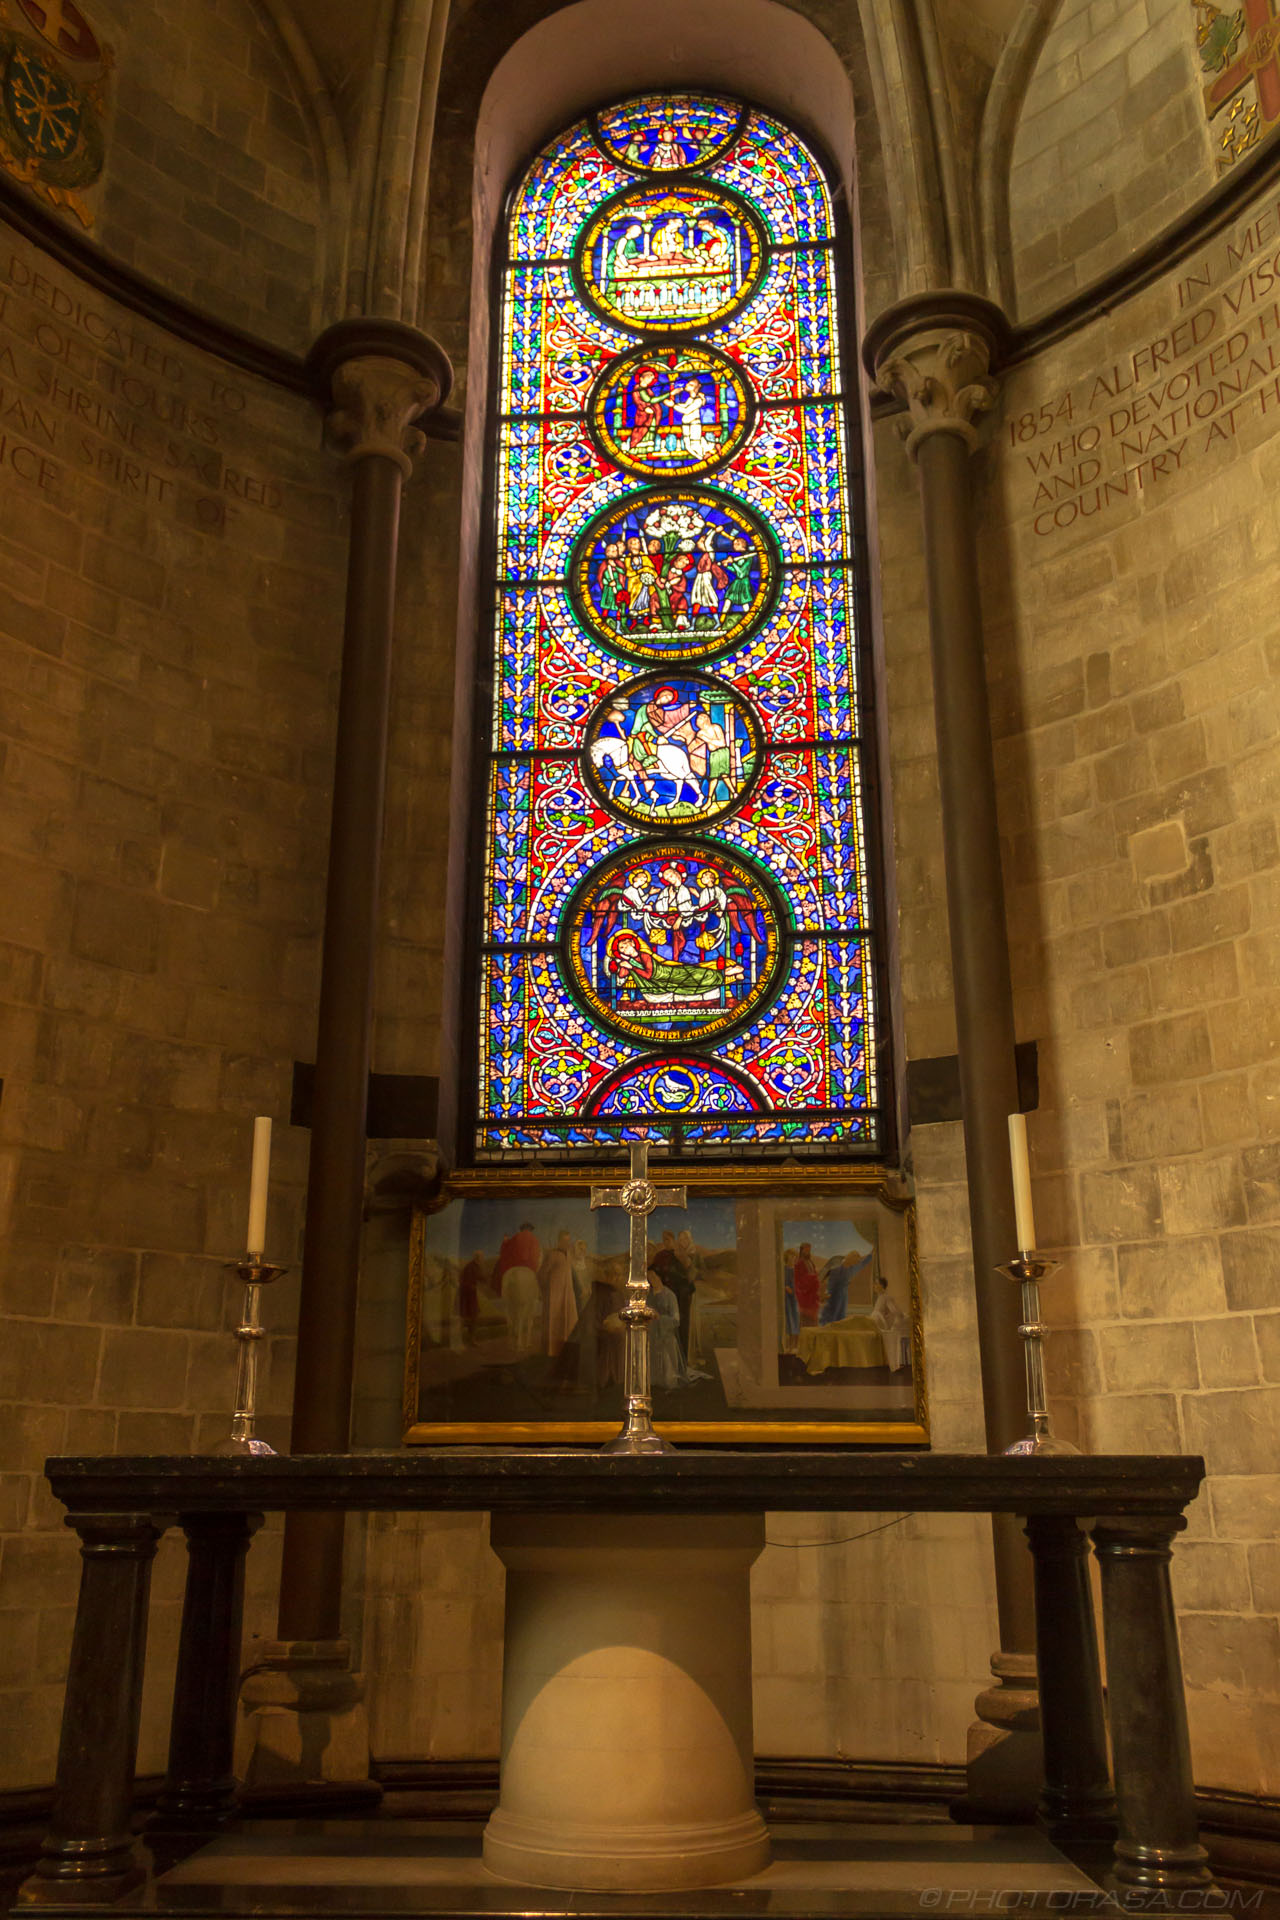 http://photorasa.com/canterbury-cathedral/prayer-alcove-in-north-east-transept/